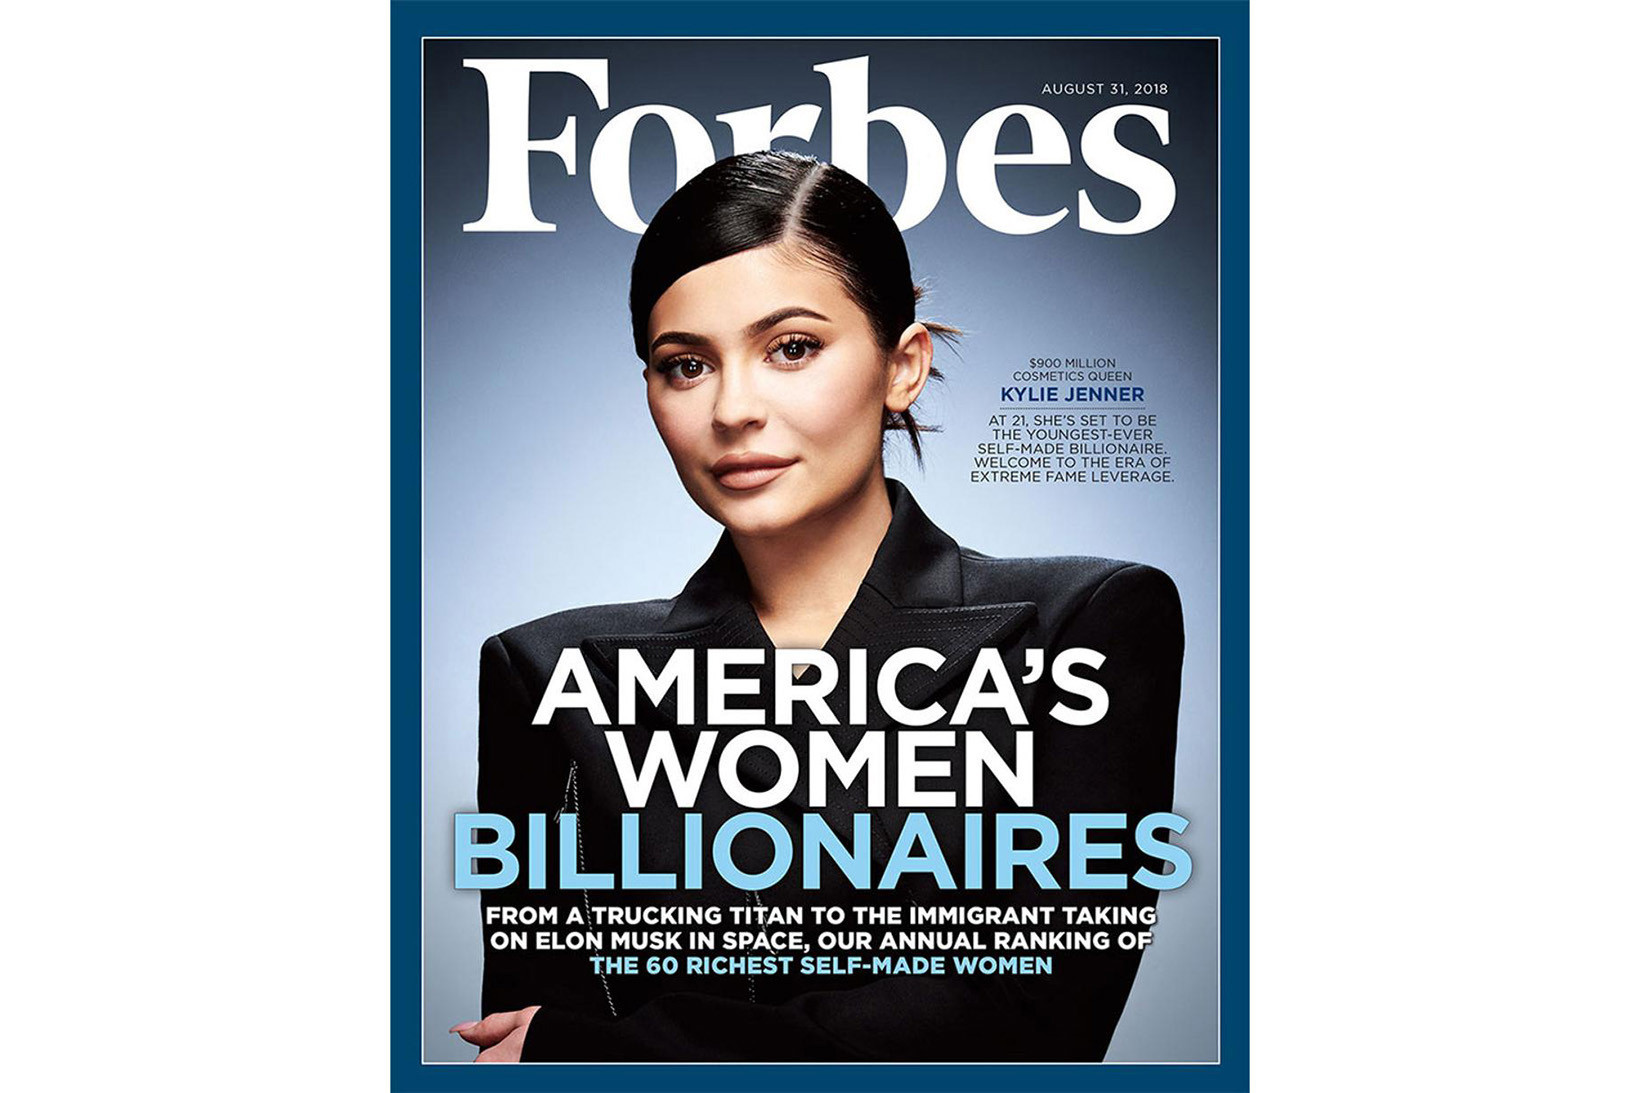 kylie-jenner-net-worth-forbes-magazine-billionaire-issue-interview-900-million-usd-01